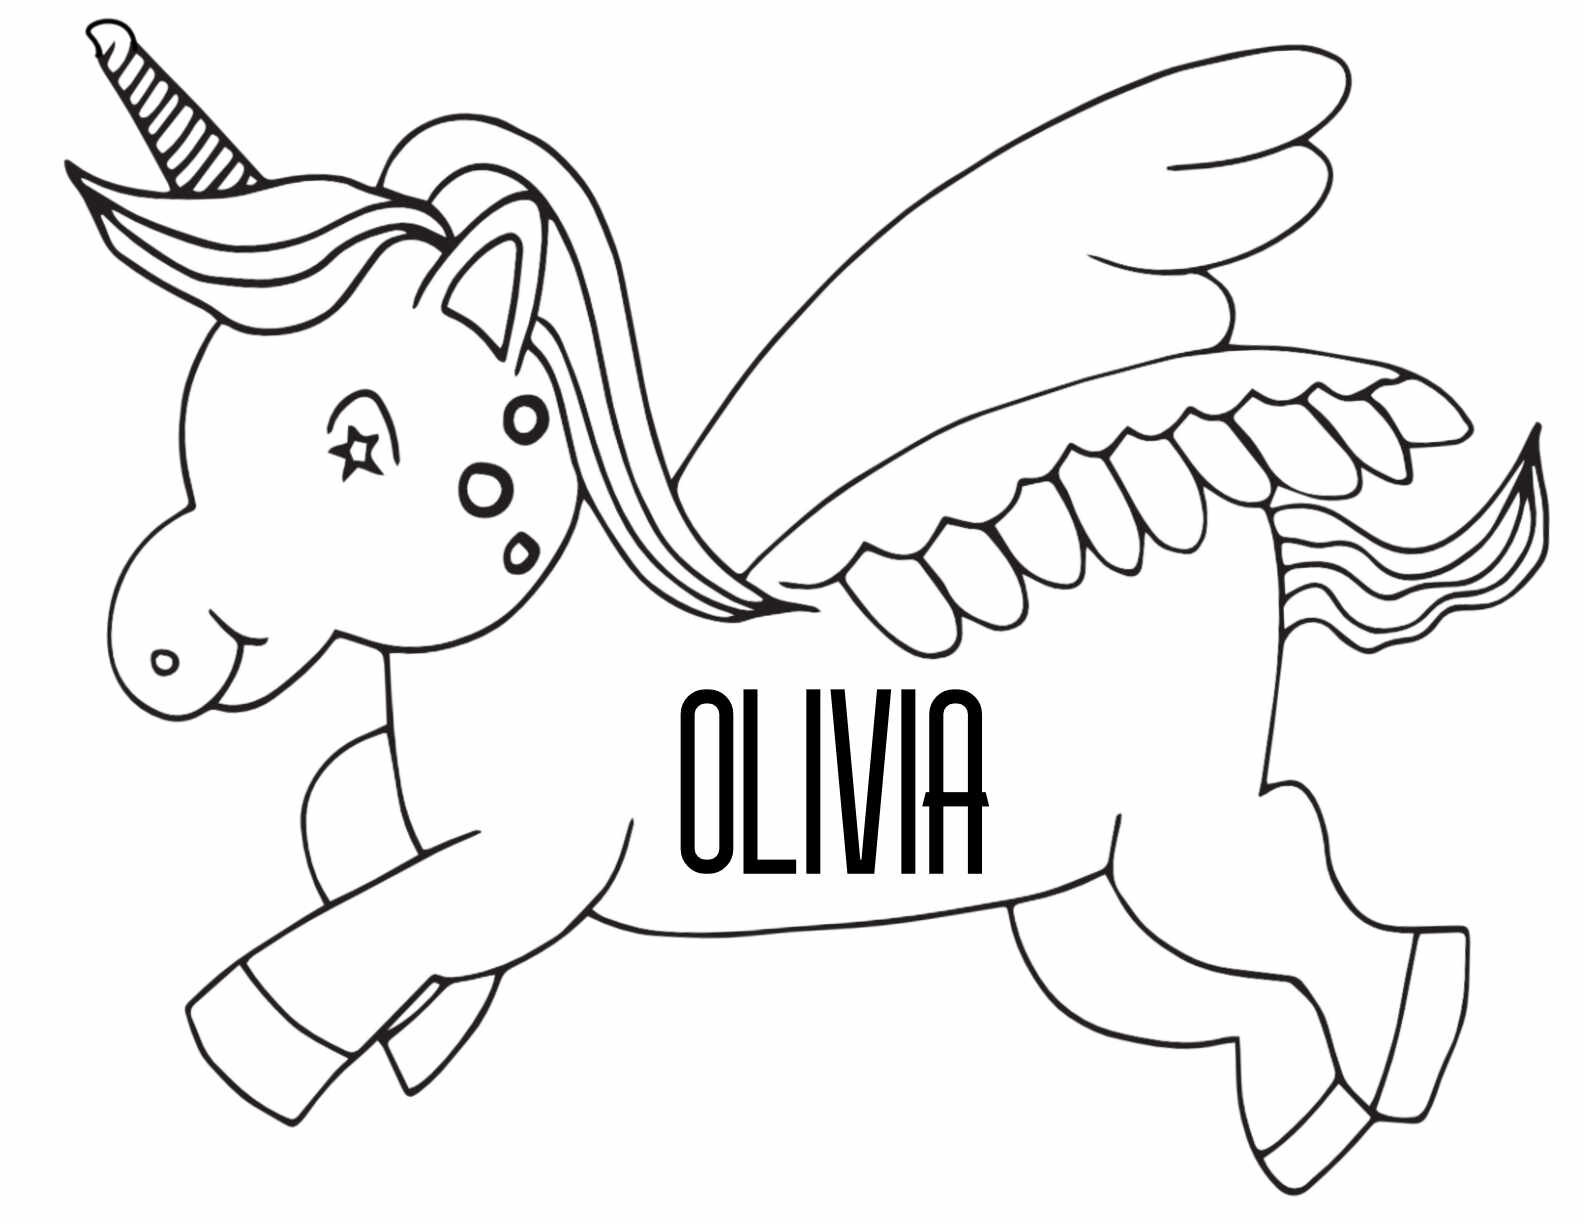 10 Olivia Coloring Pages Free Printables Stevie Doodles Free Printable Coloring Pages